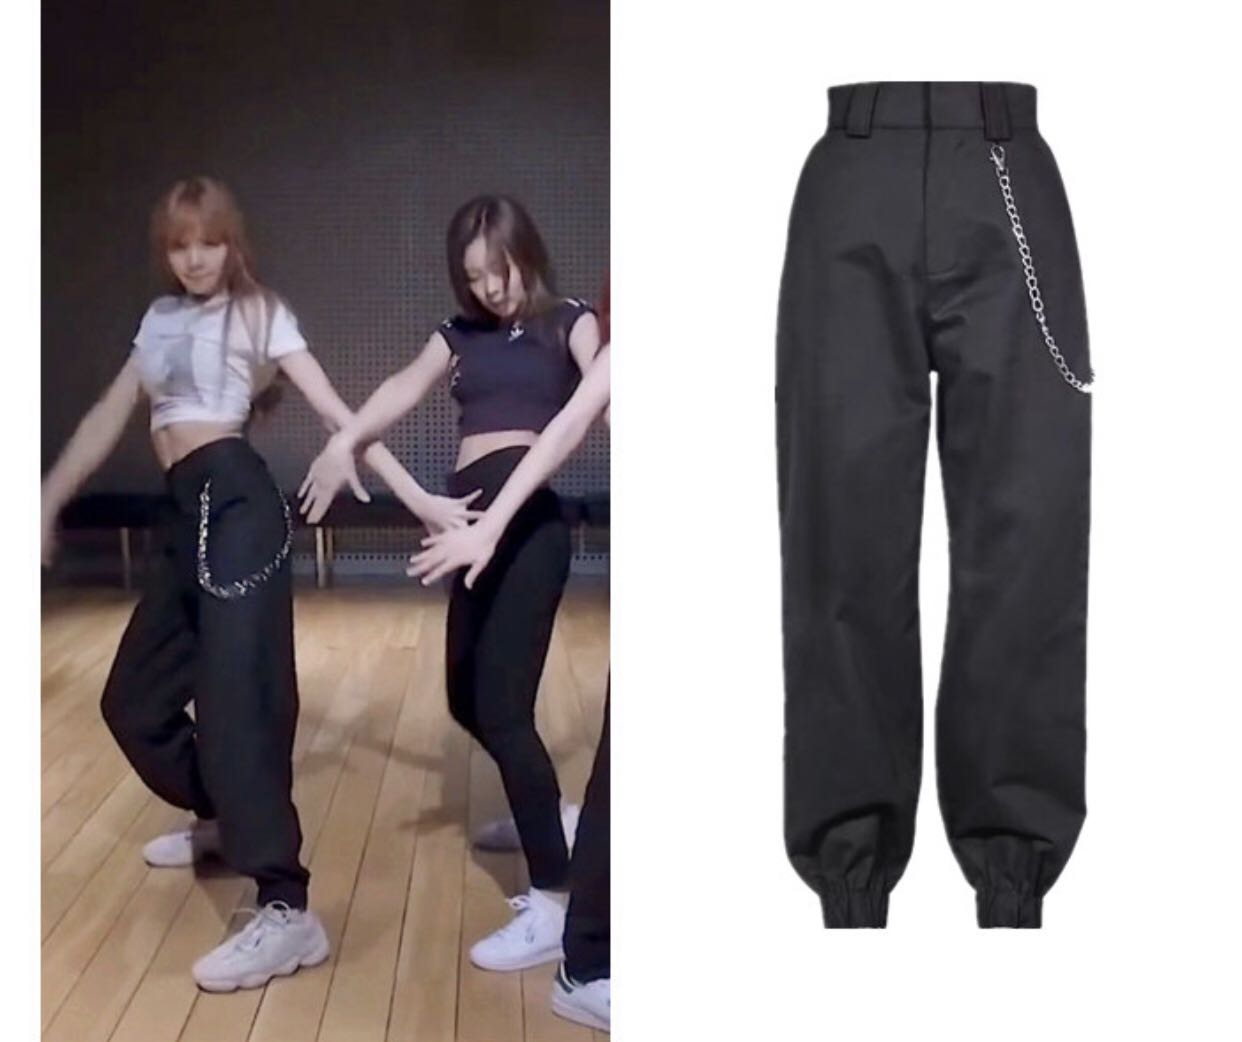 Po Blackpink Lisa Chain Pants 07 Women S Fashion Clothes Pants